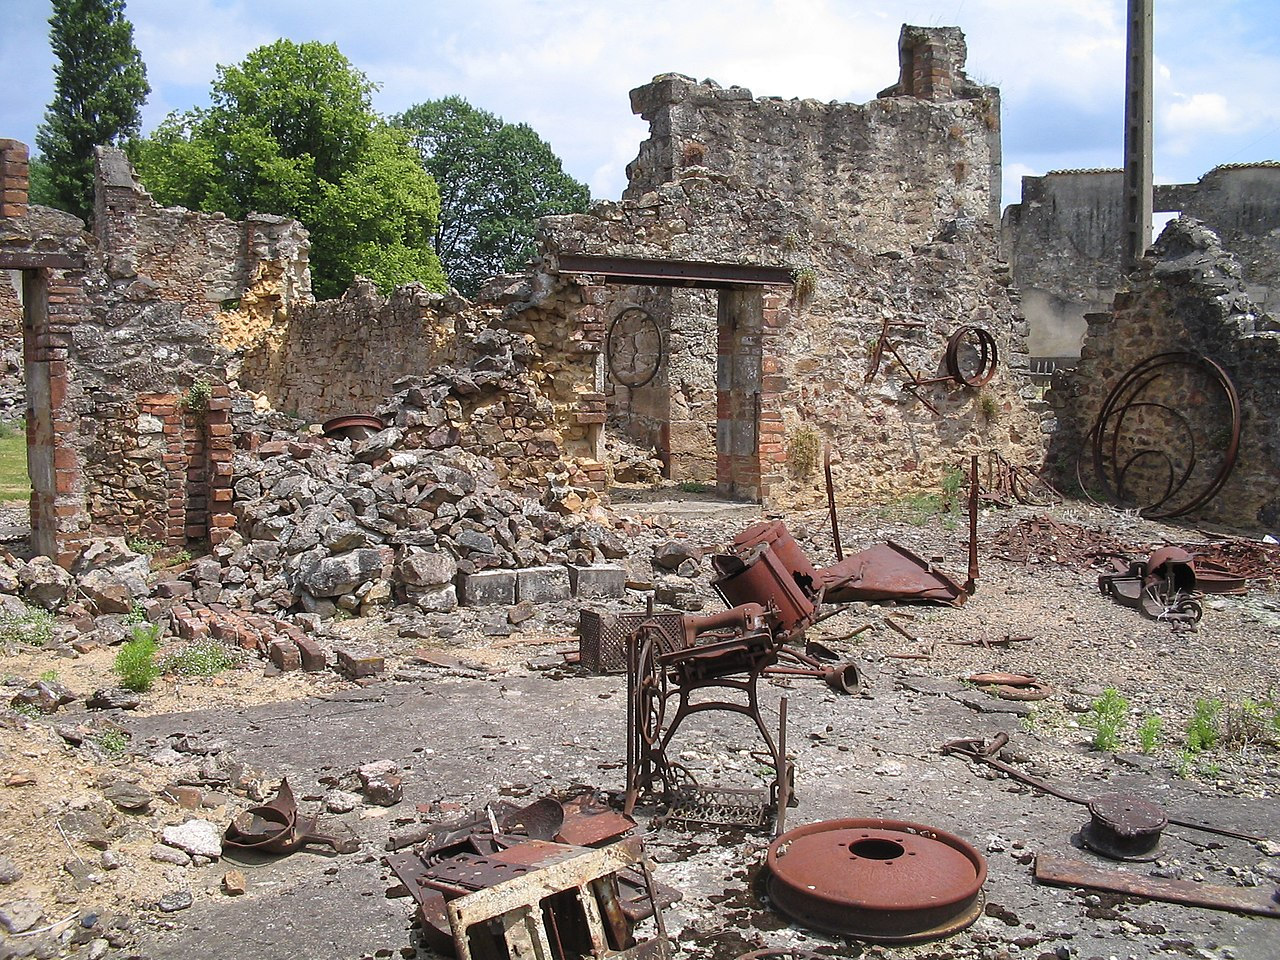 https://upload.wikimedia.org/wikipedia/commons/thumb/0/0b/Oradour-sur-Glane-Hardware-1342.jpg/1280px-Oradour-sur-Glane-Hardware-1342.jpg